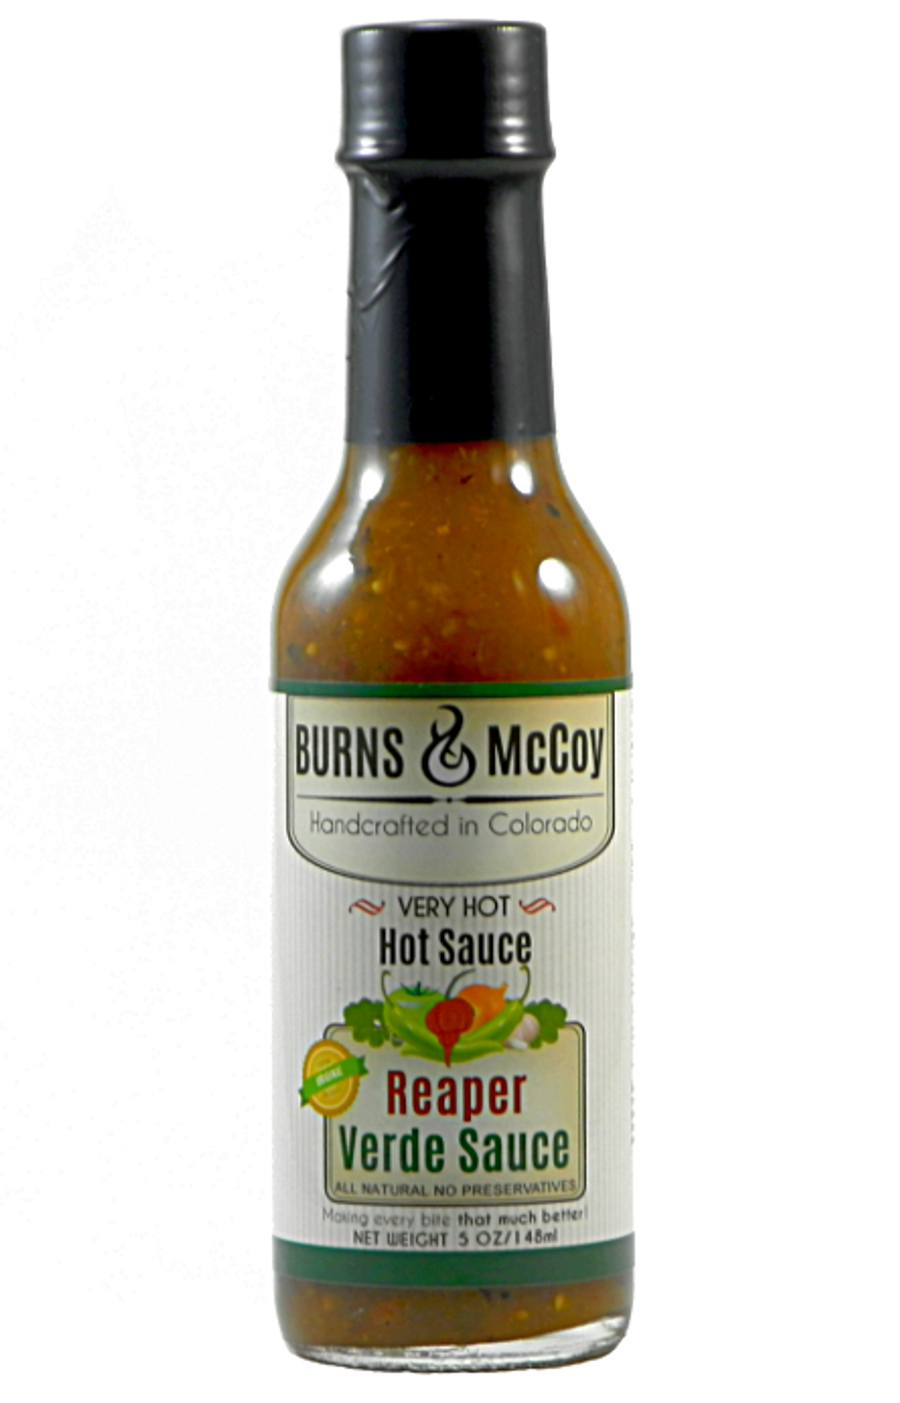 Burns & McCoy Reaper Verde